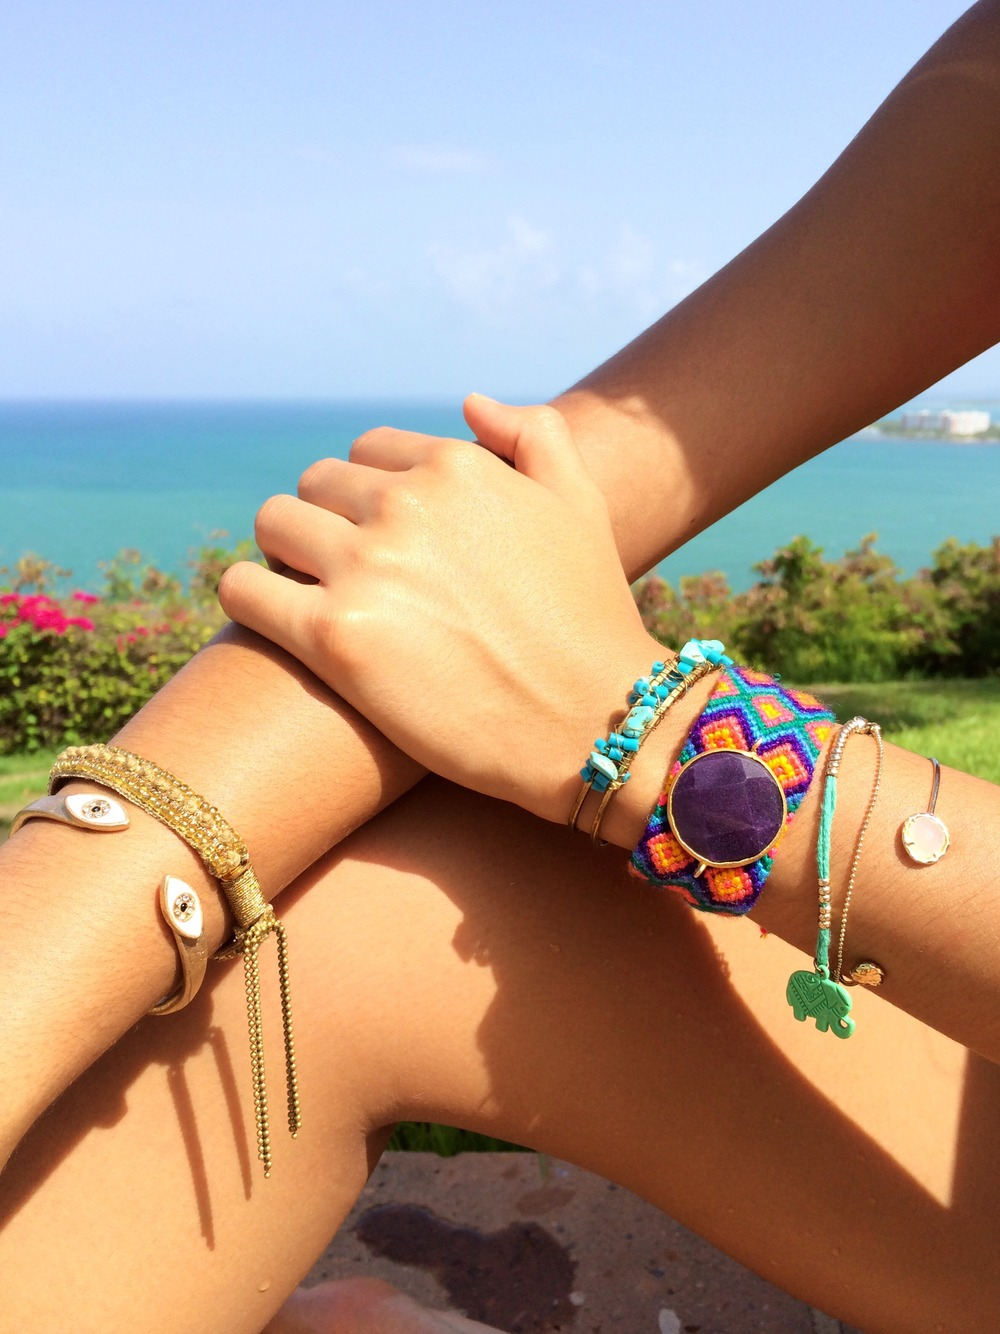 (From left to right)  Evil Eye Cuff, Urban Outfitters; Gold Beaded Tassel Bracelet, Urban Outfitters; Gold/Turquoise Stone Cuff, Nordstrom; Teal Elephant Double-Strand Bracelet, Flea Market; Gold Cuff w/ Stone, LF.